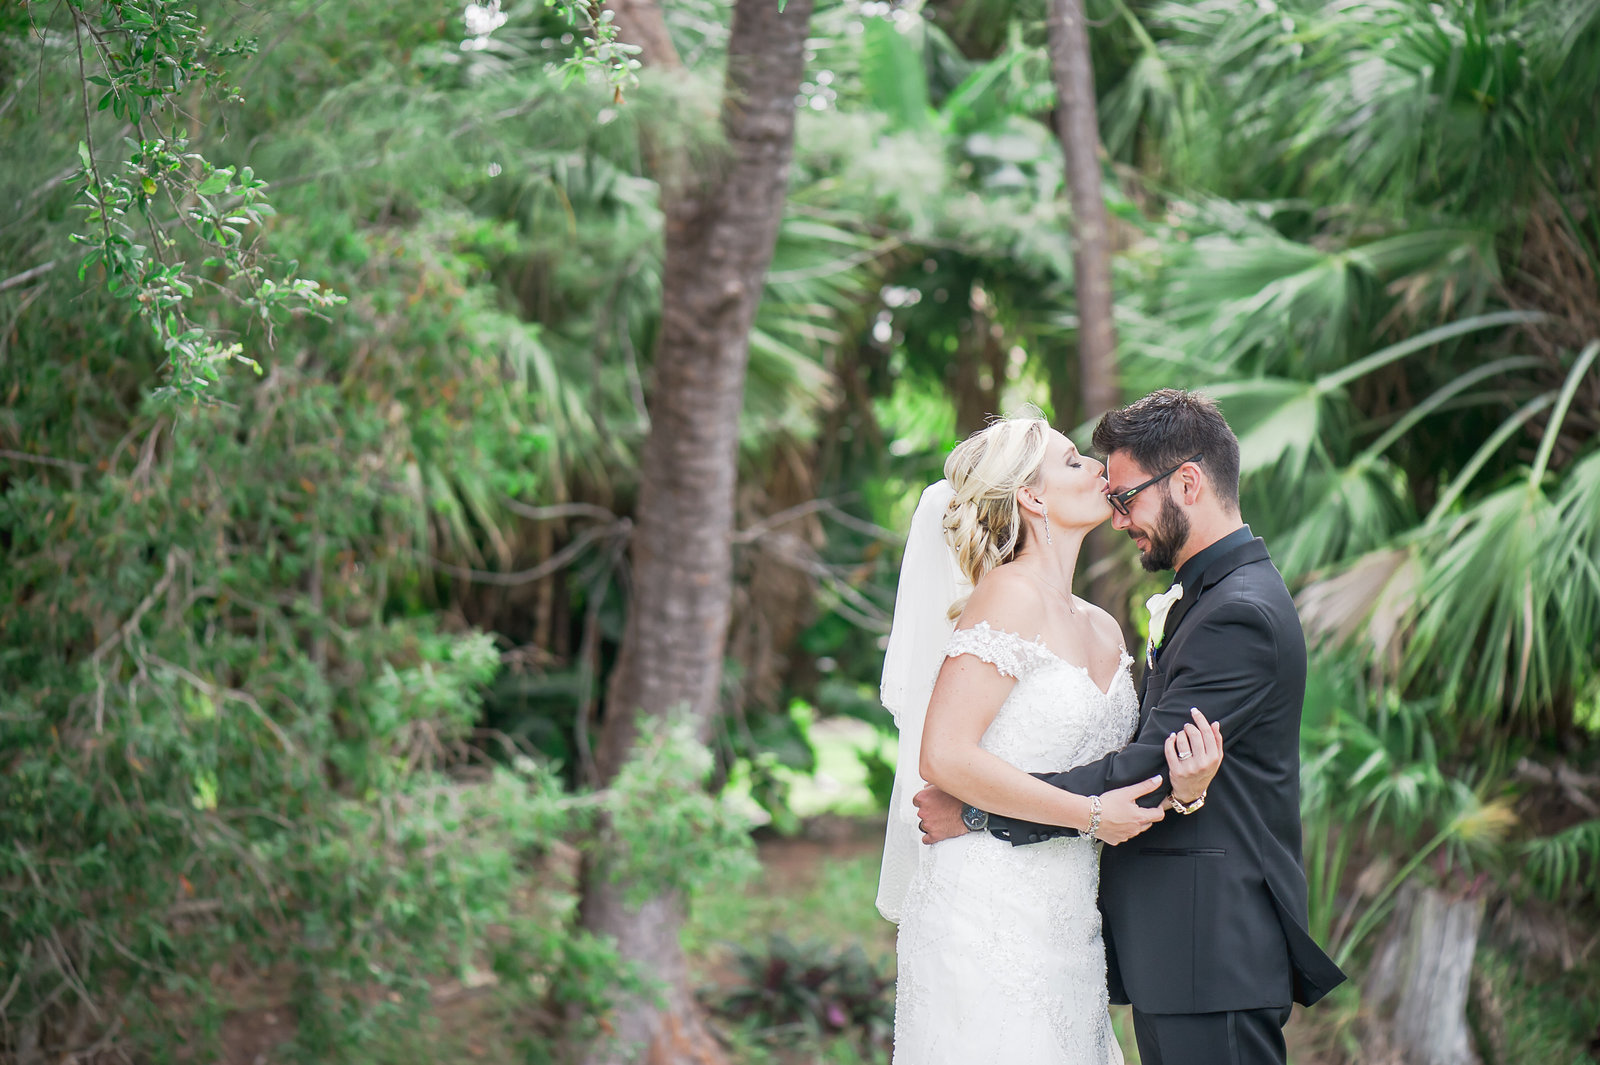 Kiss Forehead - Myacoo Country Club Wedding - Palm Beach Wedding Photography by Palm Beach Photography, Inc.